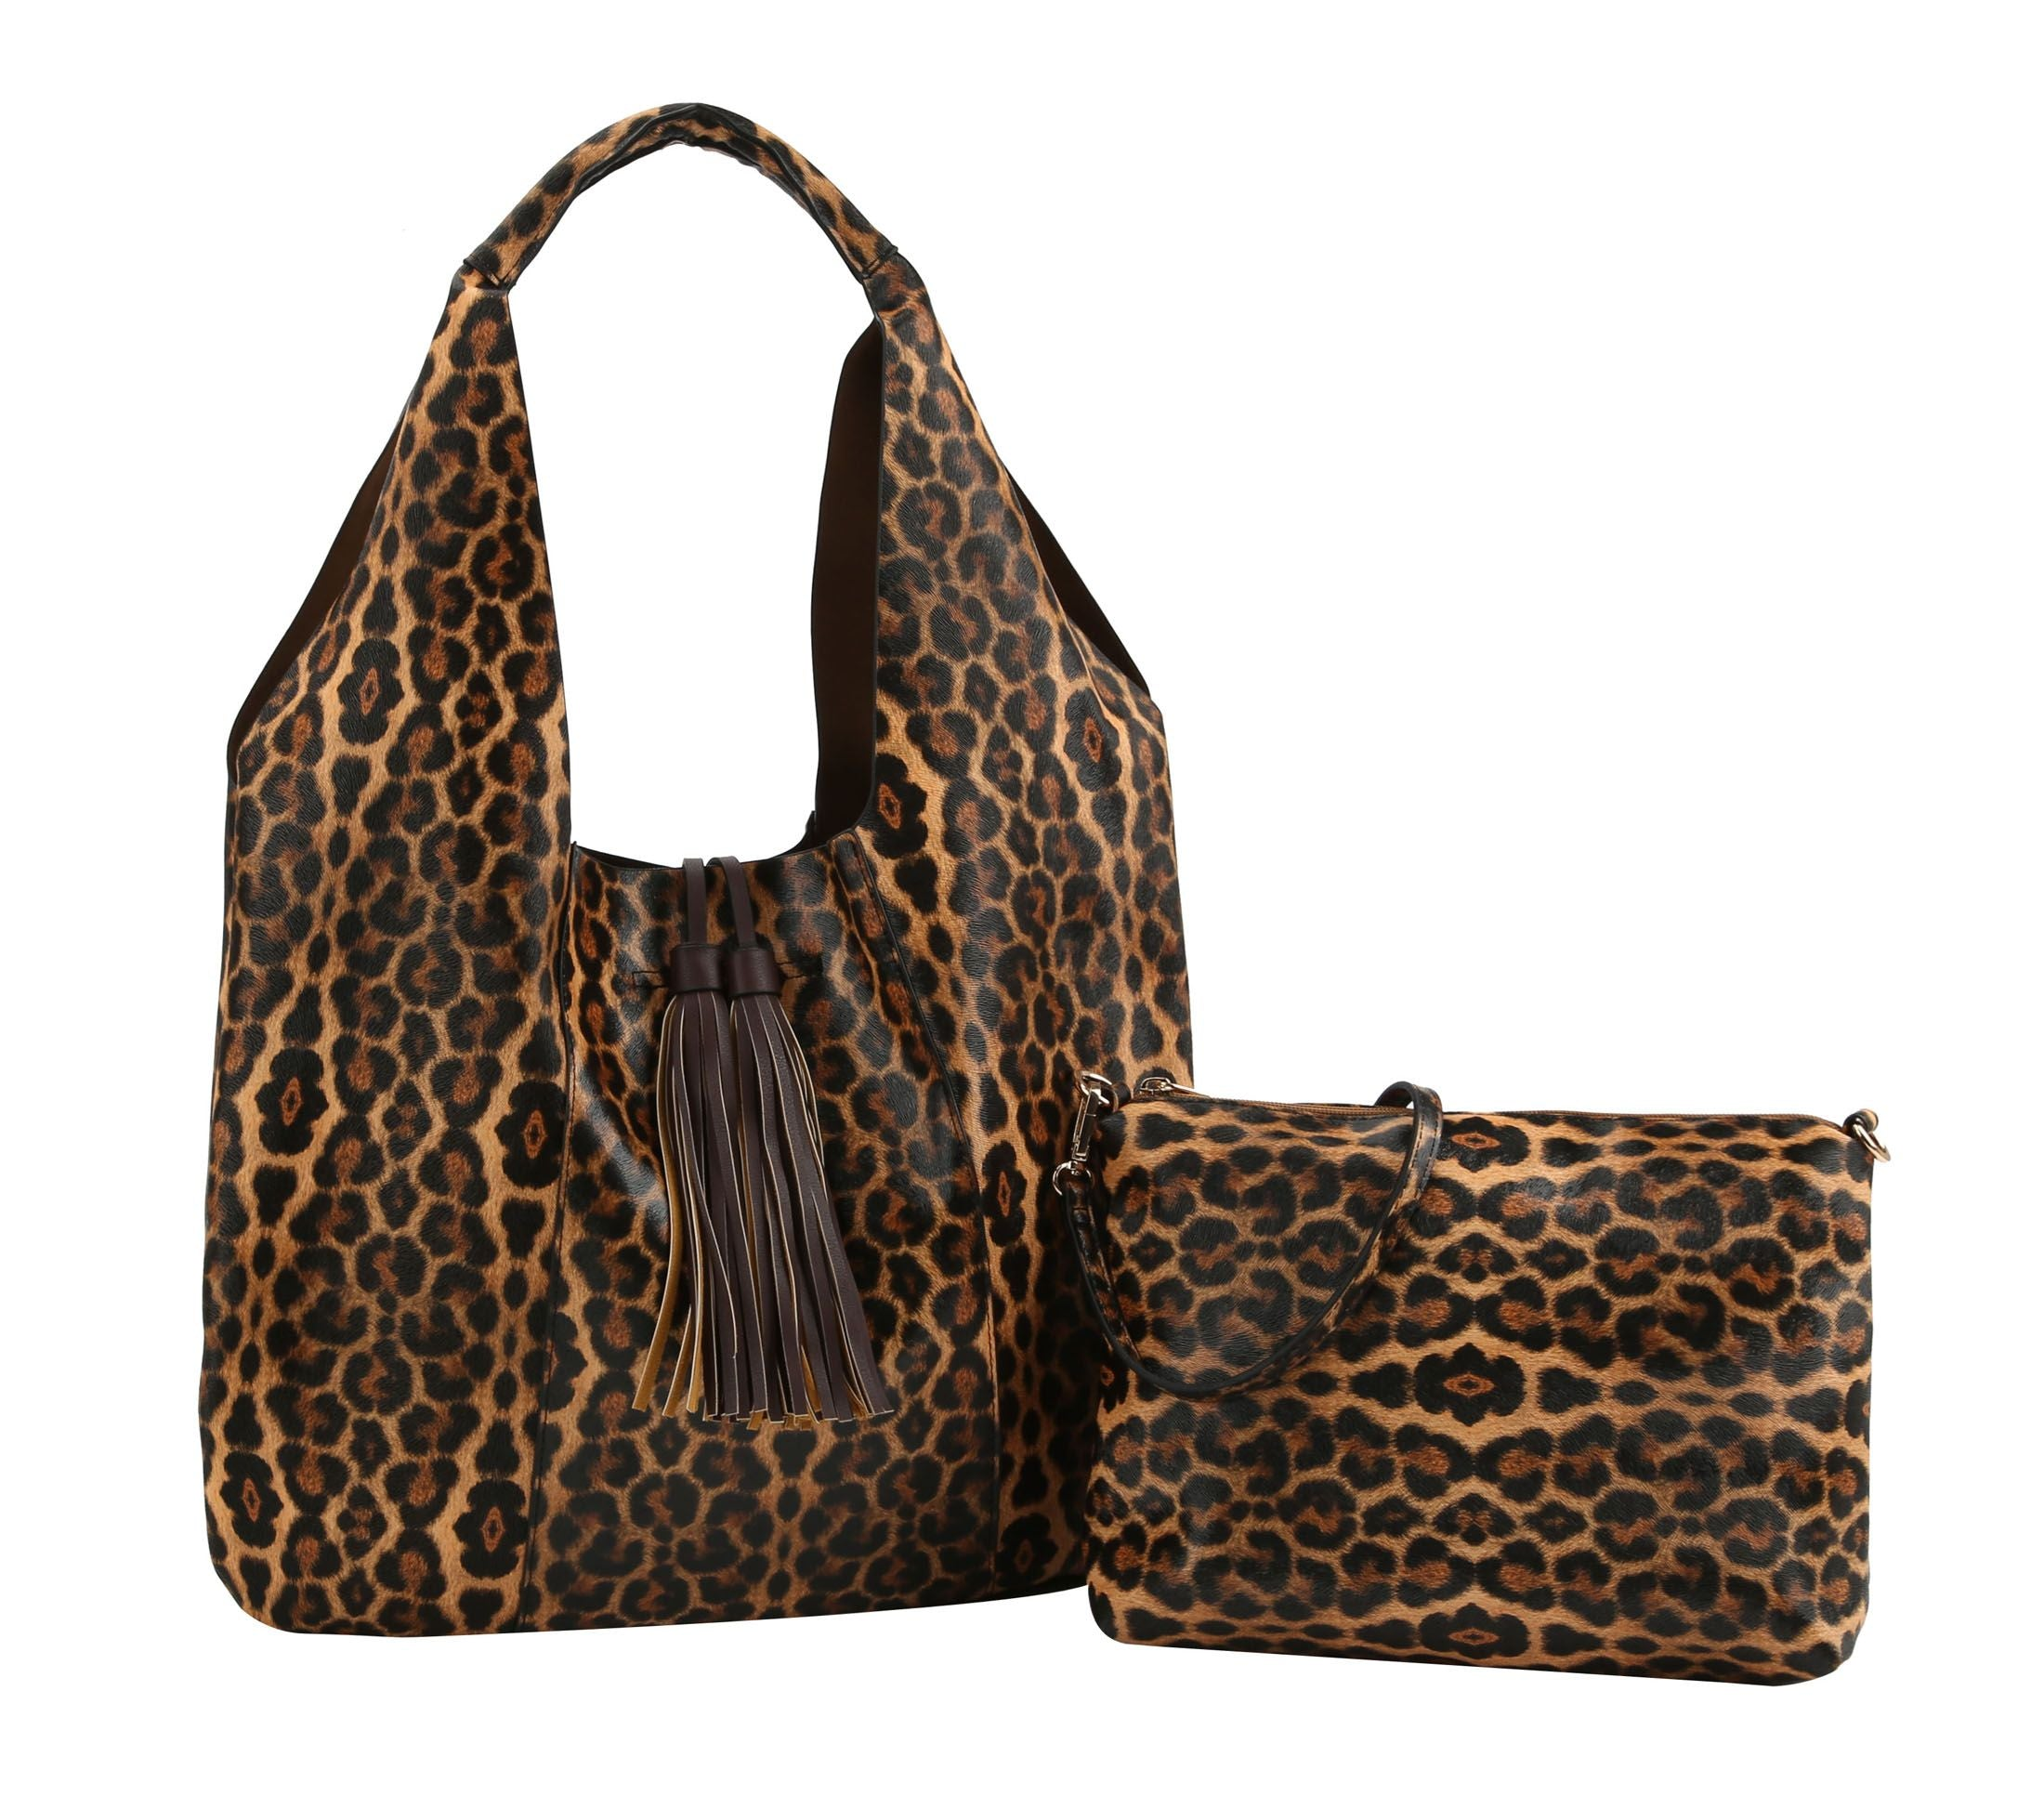 DIAMOND COLLECTION    JY-0274-LEP 2 IN 1 HOBO